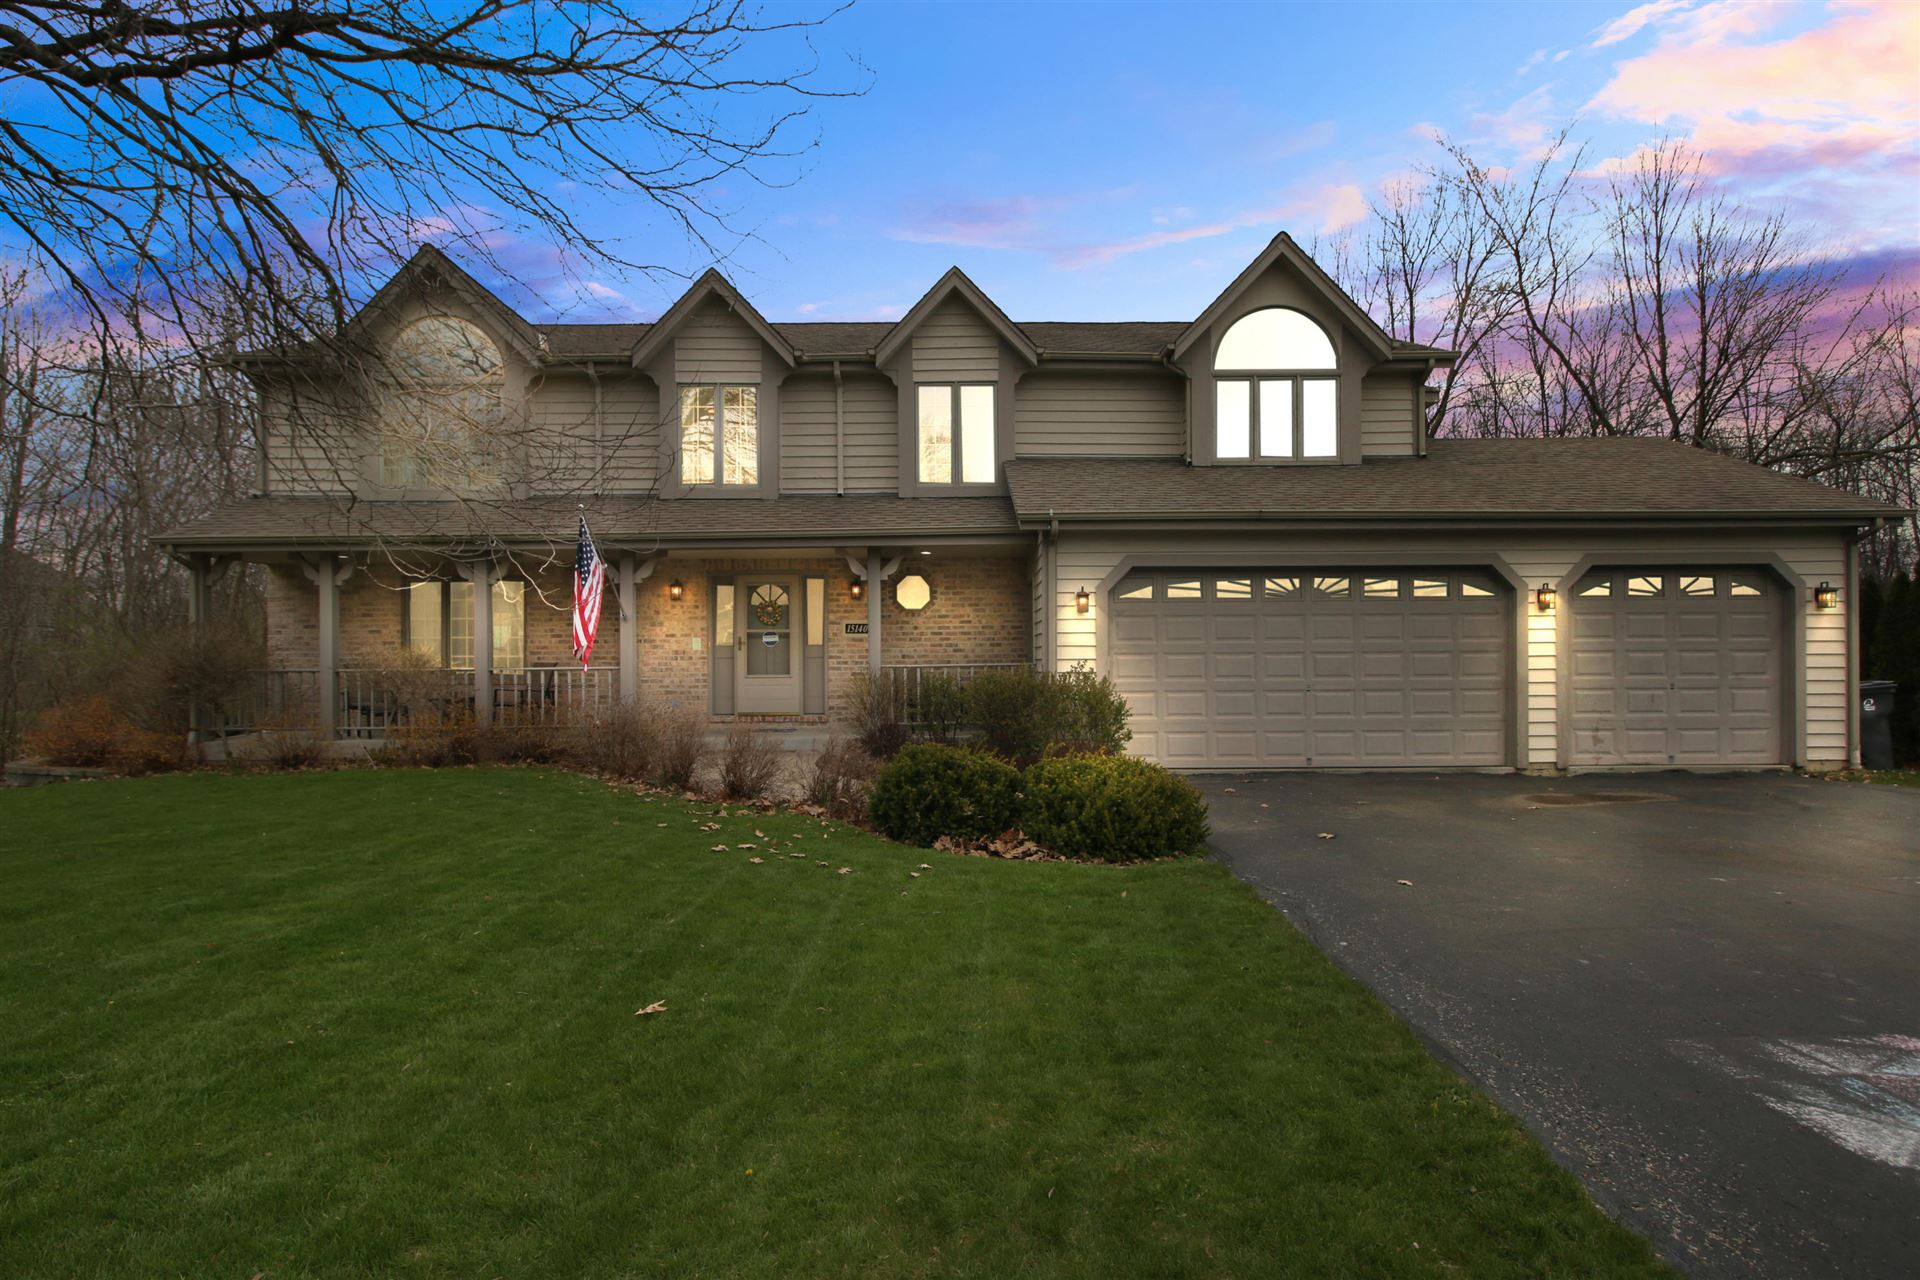 15140 W Lincoln Ave, New Berlin, WI 53151 - #: 1686341